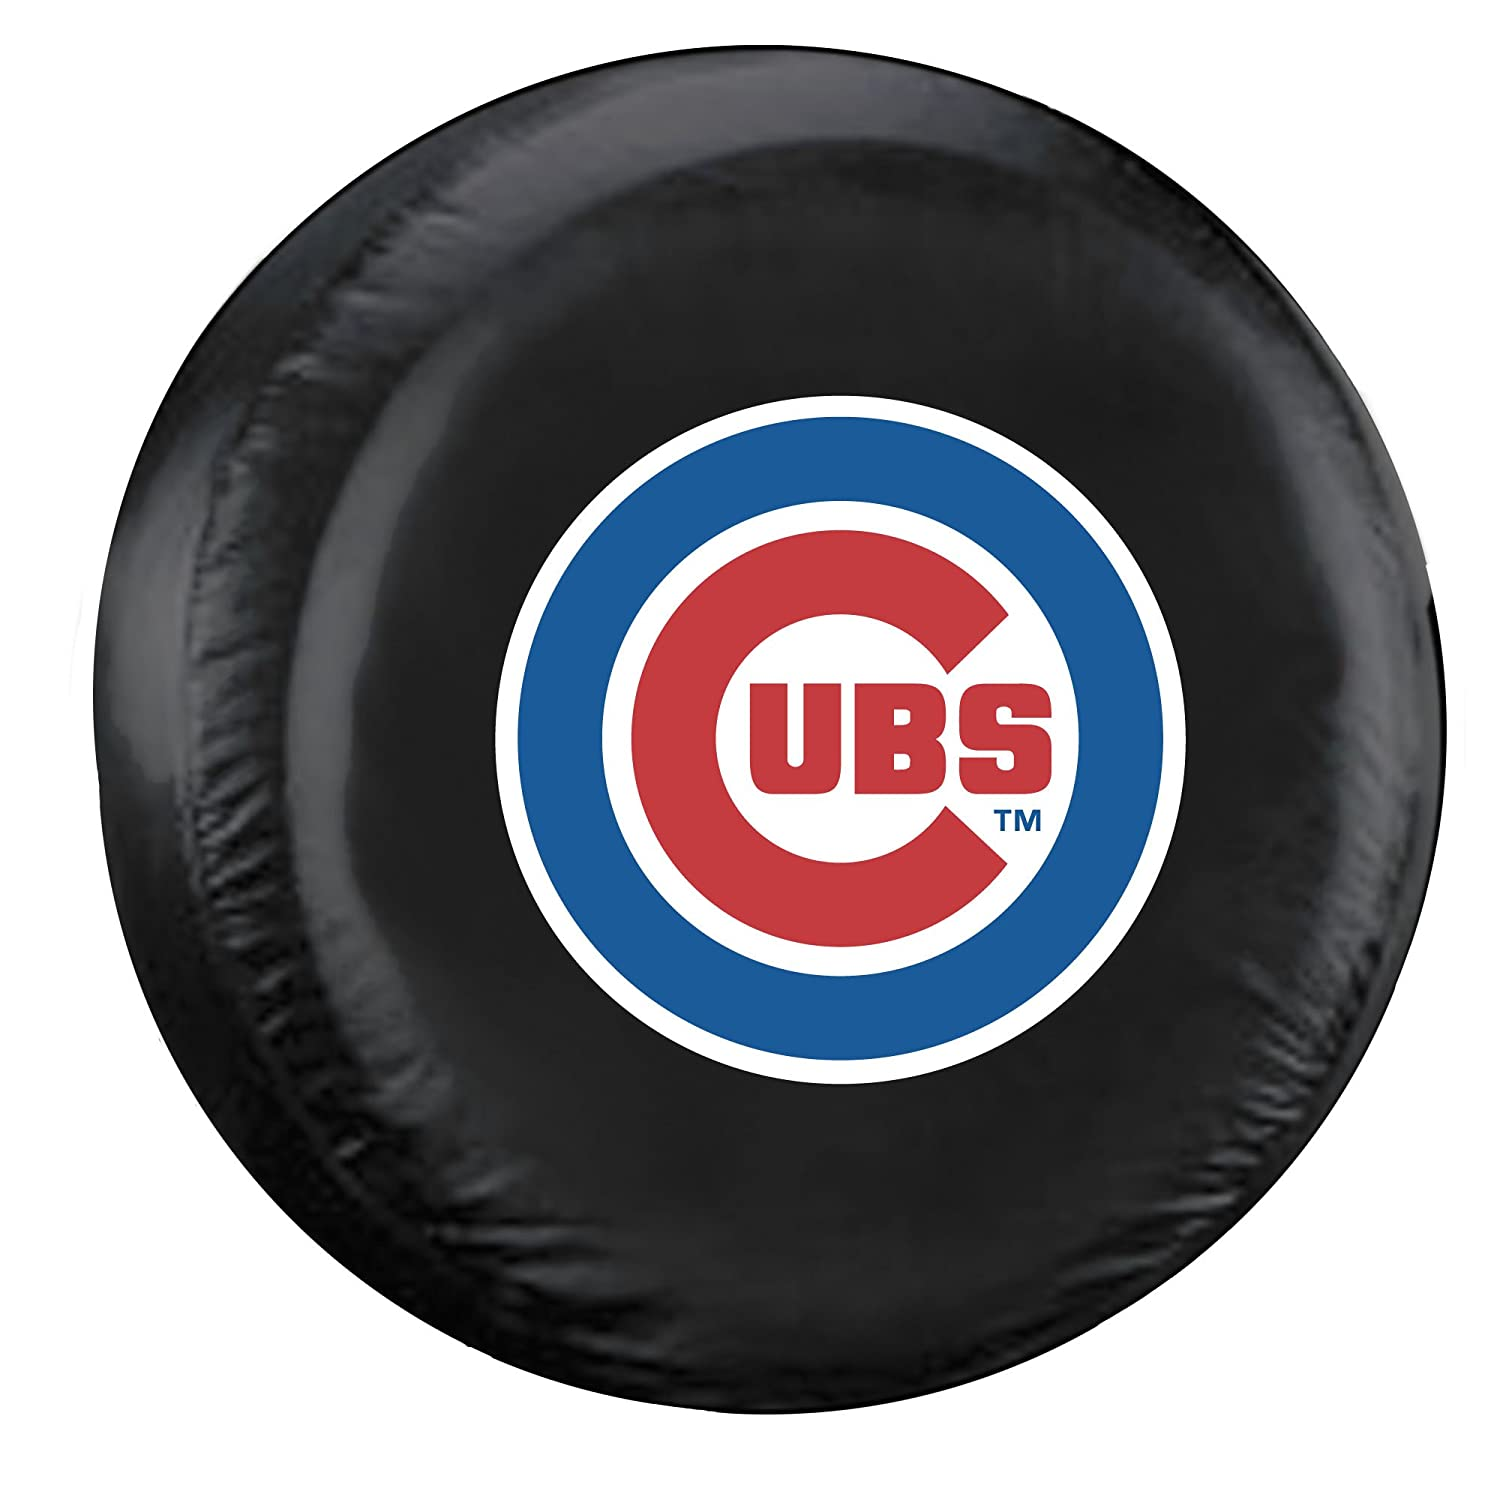 Fremont Die MLB Chicago Cubs Tire Cover Fremont Die Inc. 023245684163